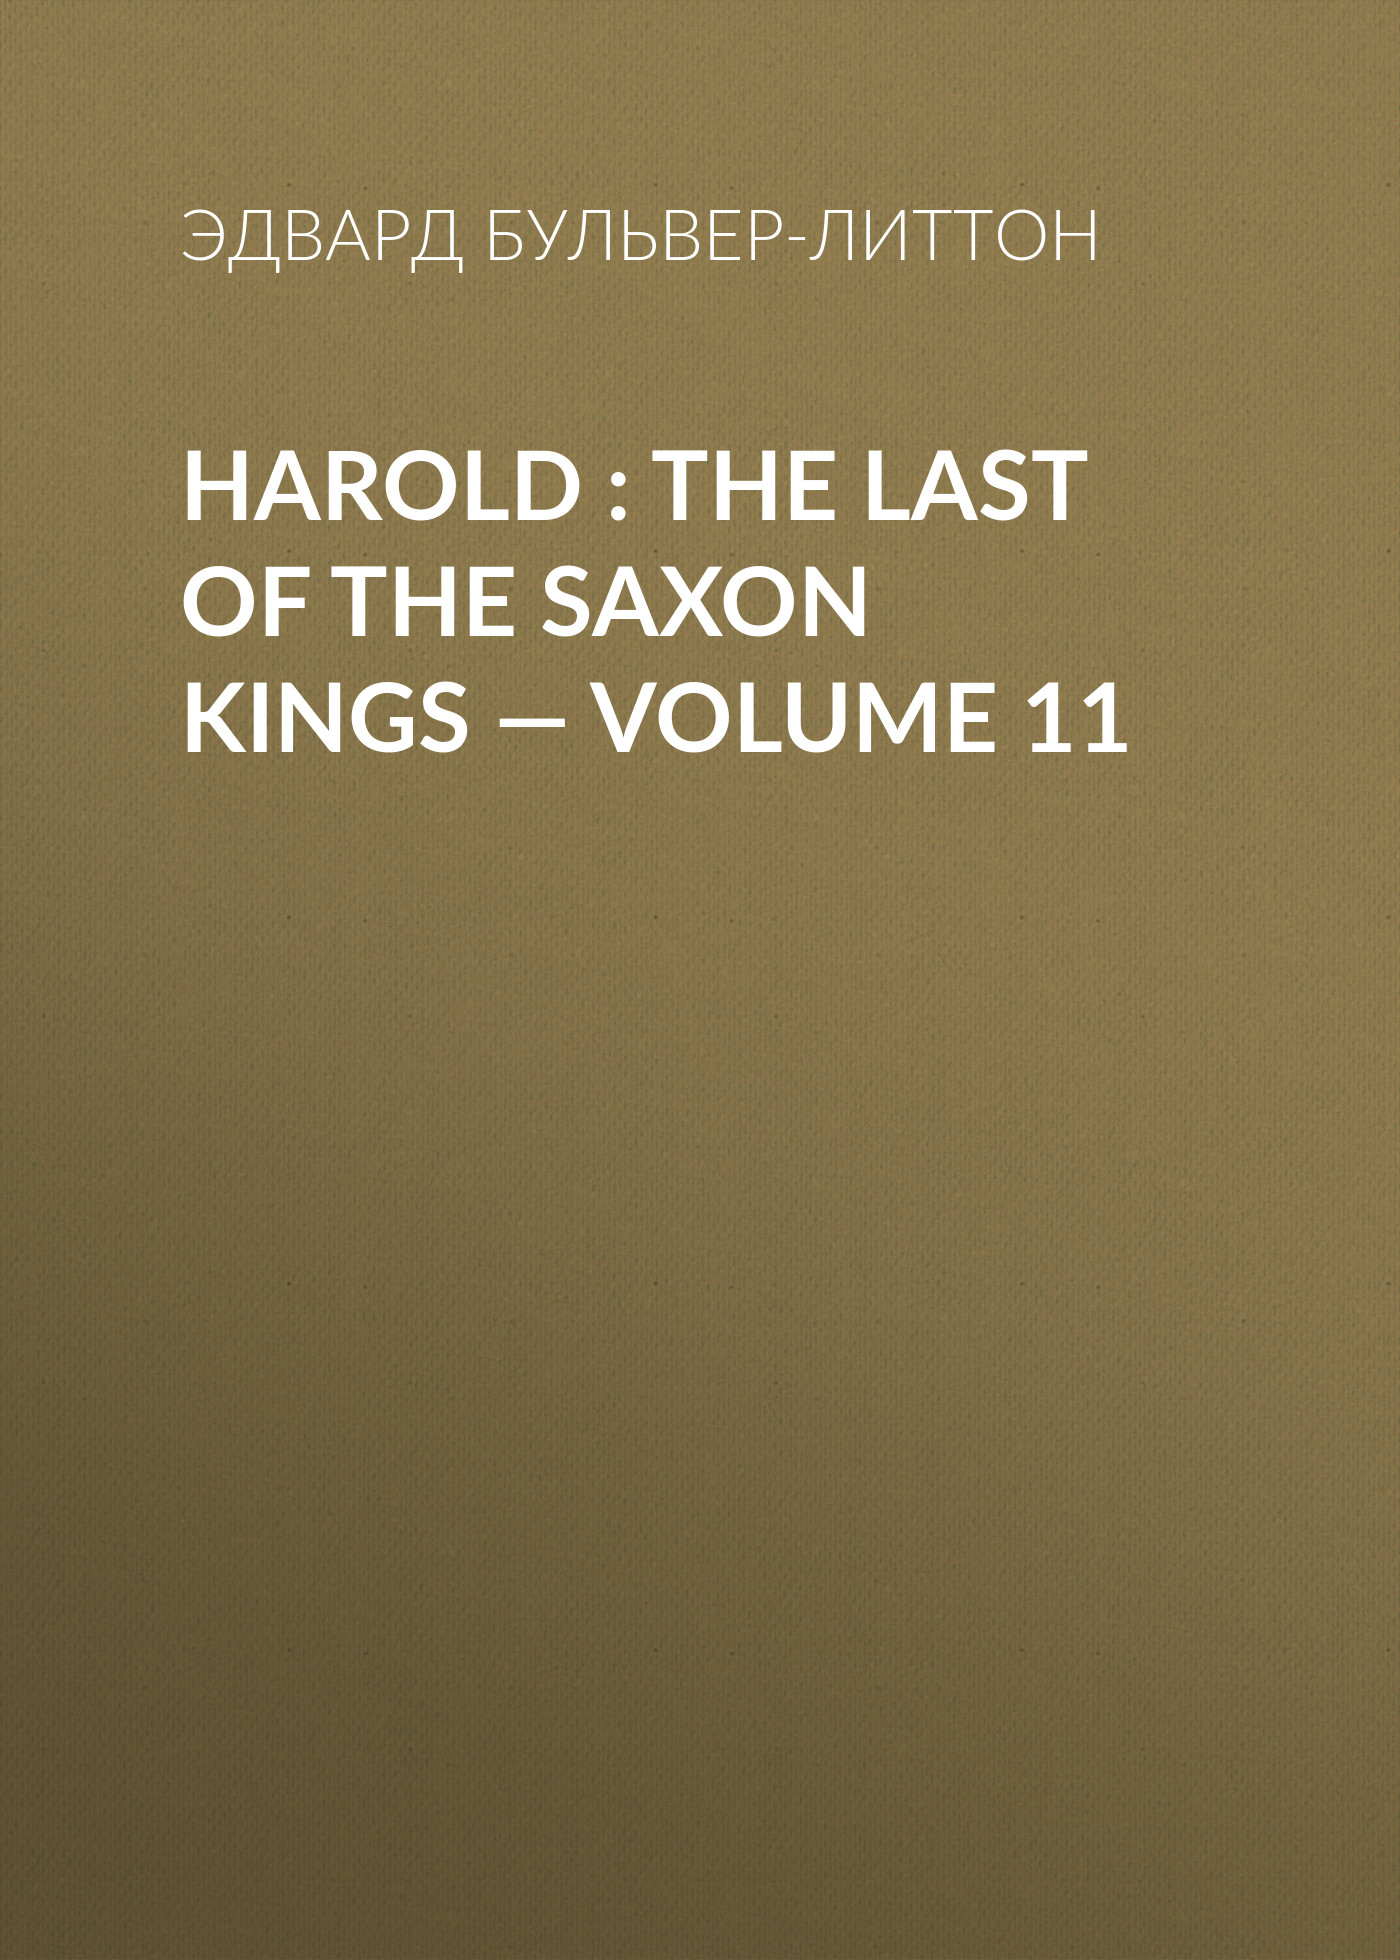 Эдвард Бульвер-Литтон Harold : the Last of the Saxon Kings — Volume 11